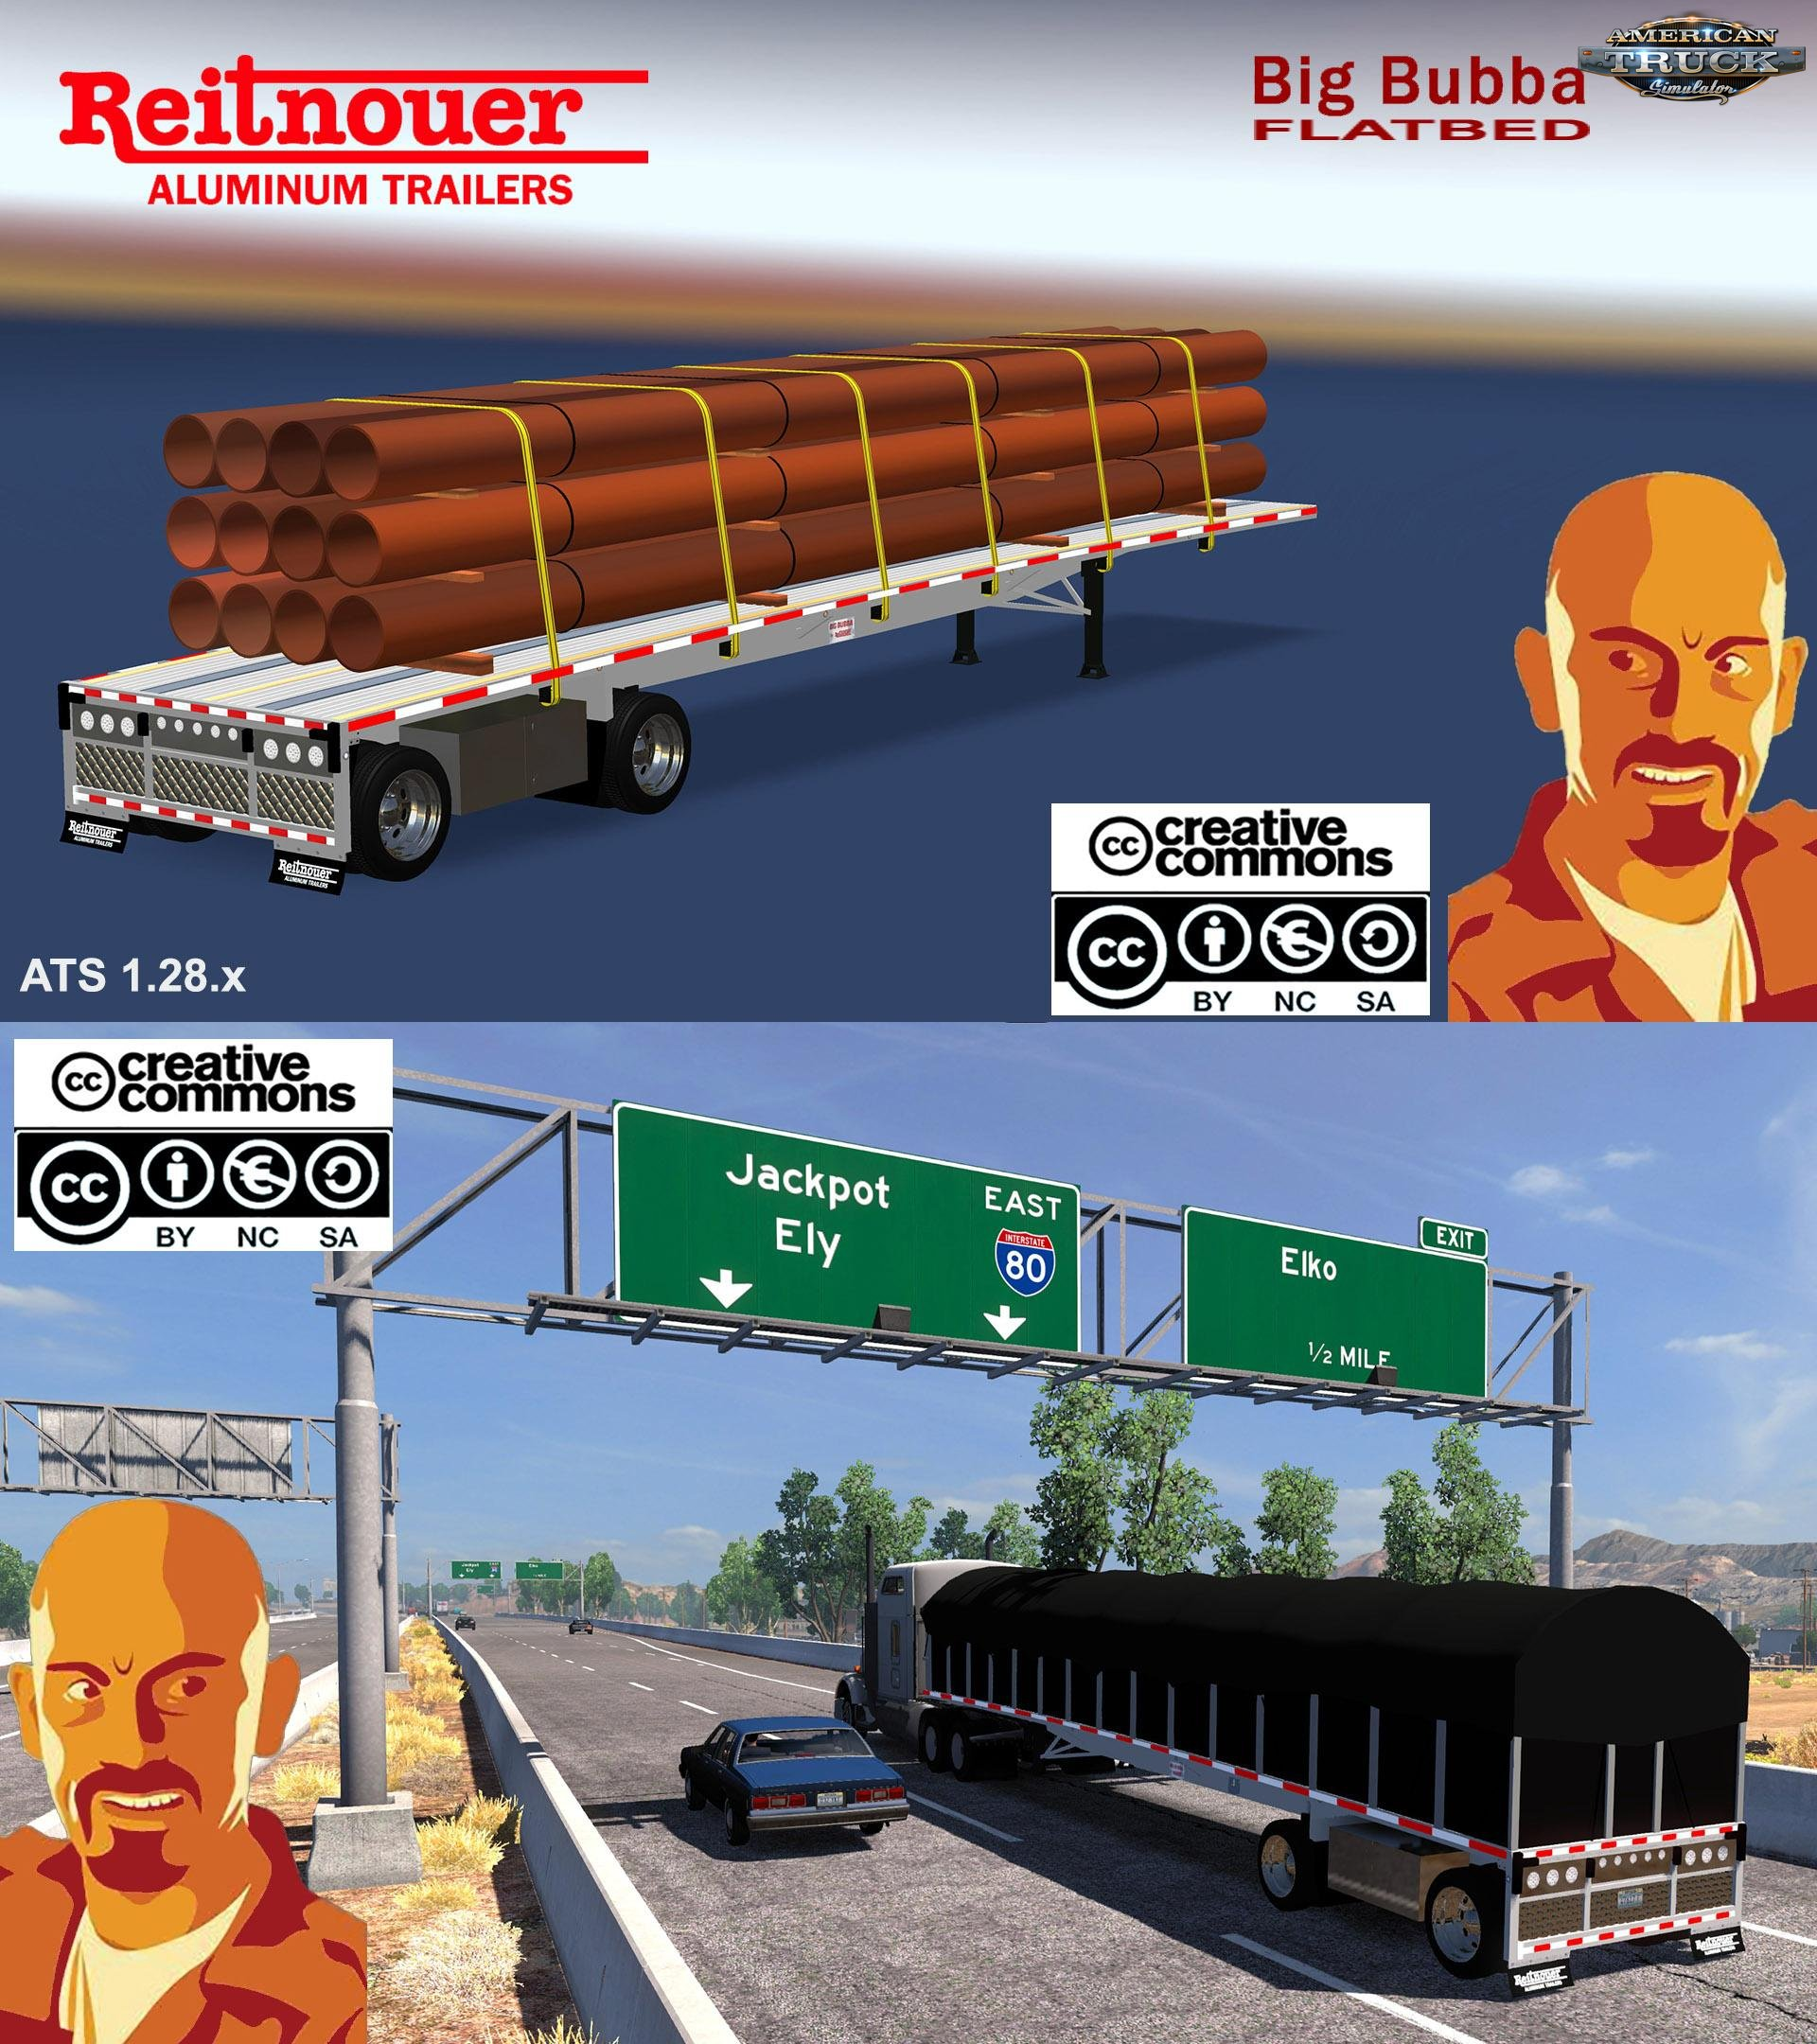 Reitnouer Bigbubba Flatbed Trailer v1.0 (1.28.x)